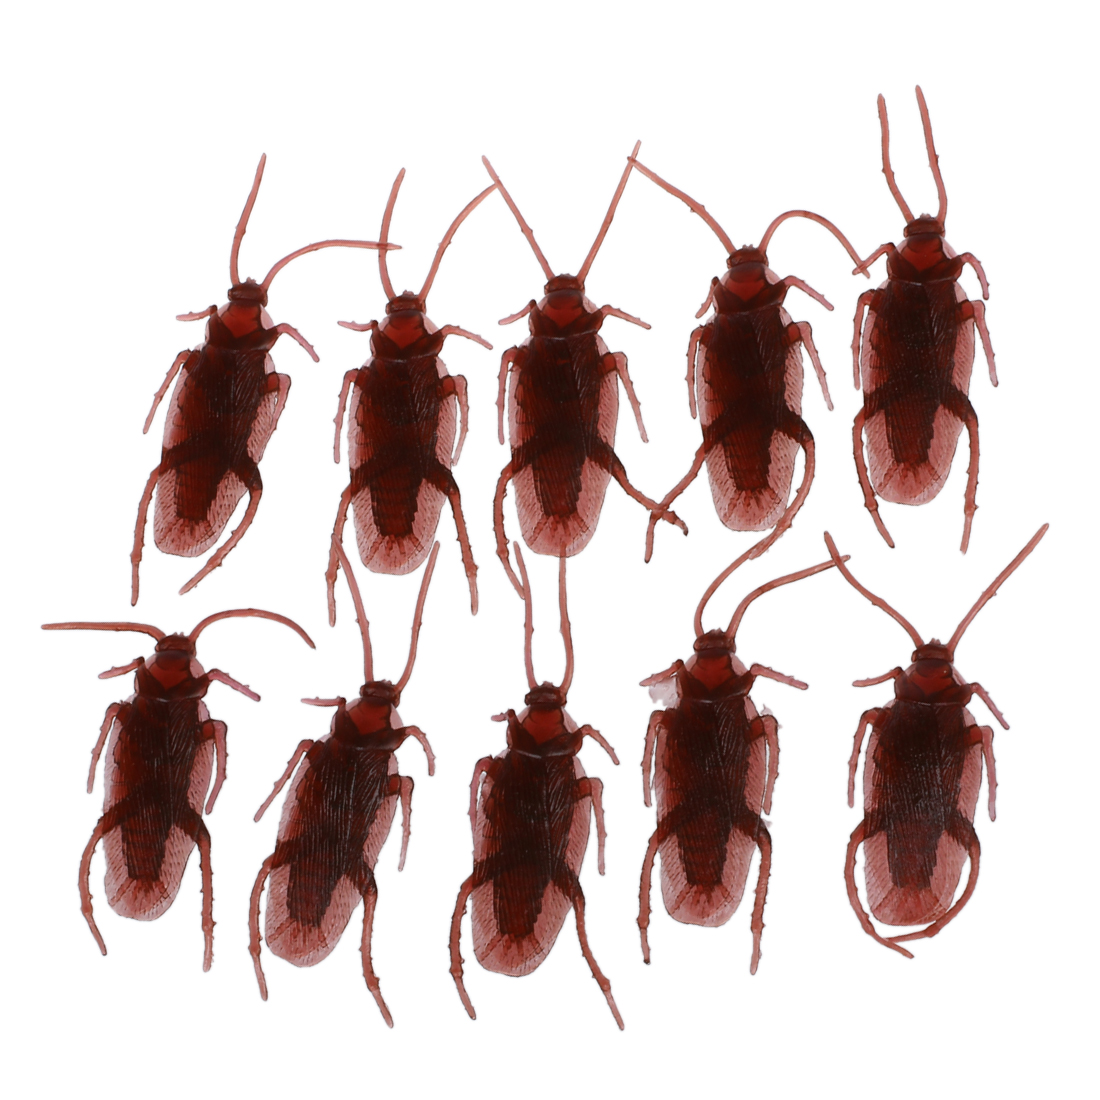 ABWE Best Sale 10 Fake Roaches Prank Novelty Cockroach Bugs Look Real